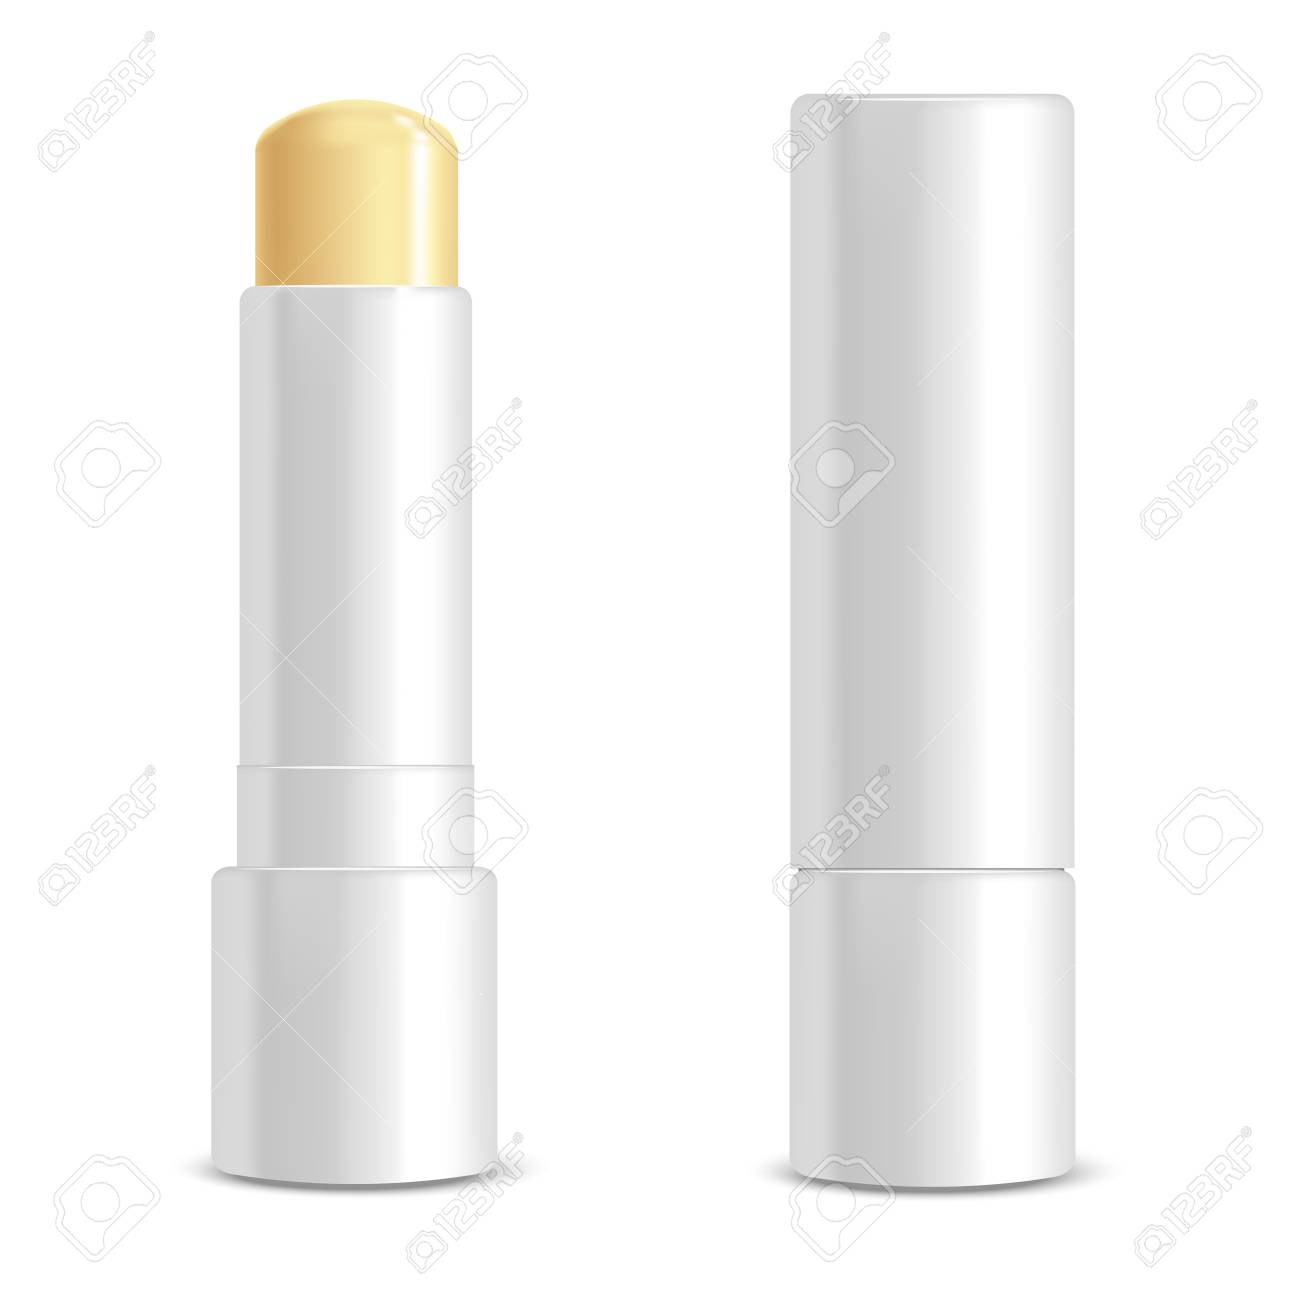 Realistic 3d Detailed White Blank Lip Balm Stick Template Mockup